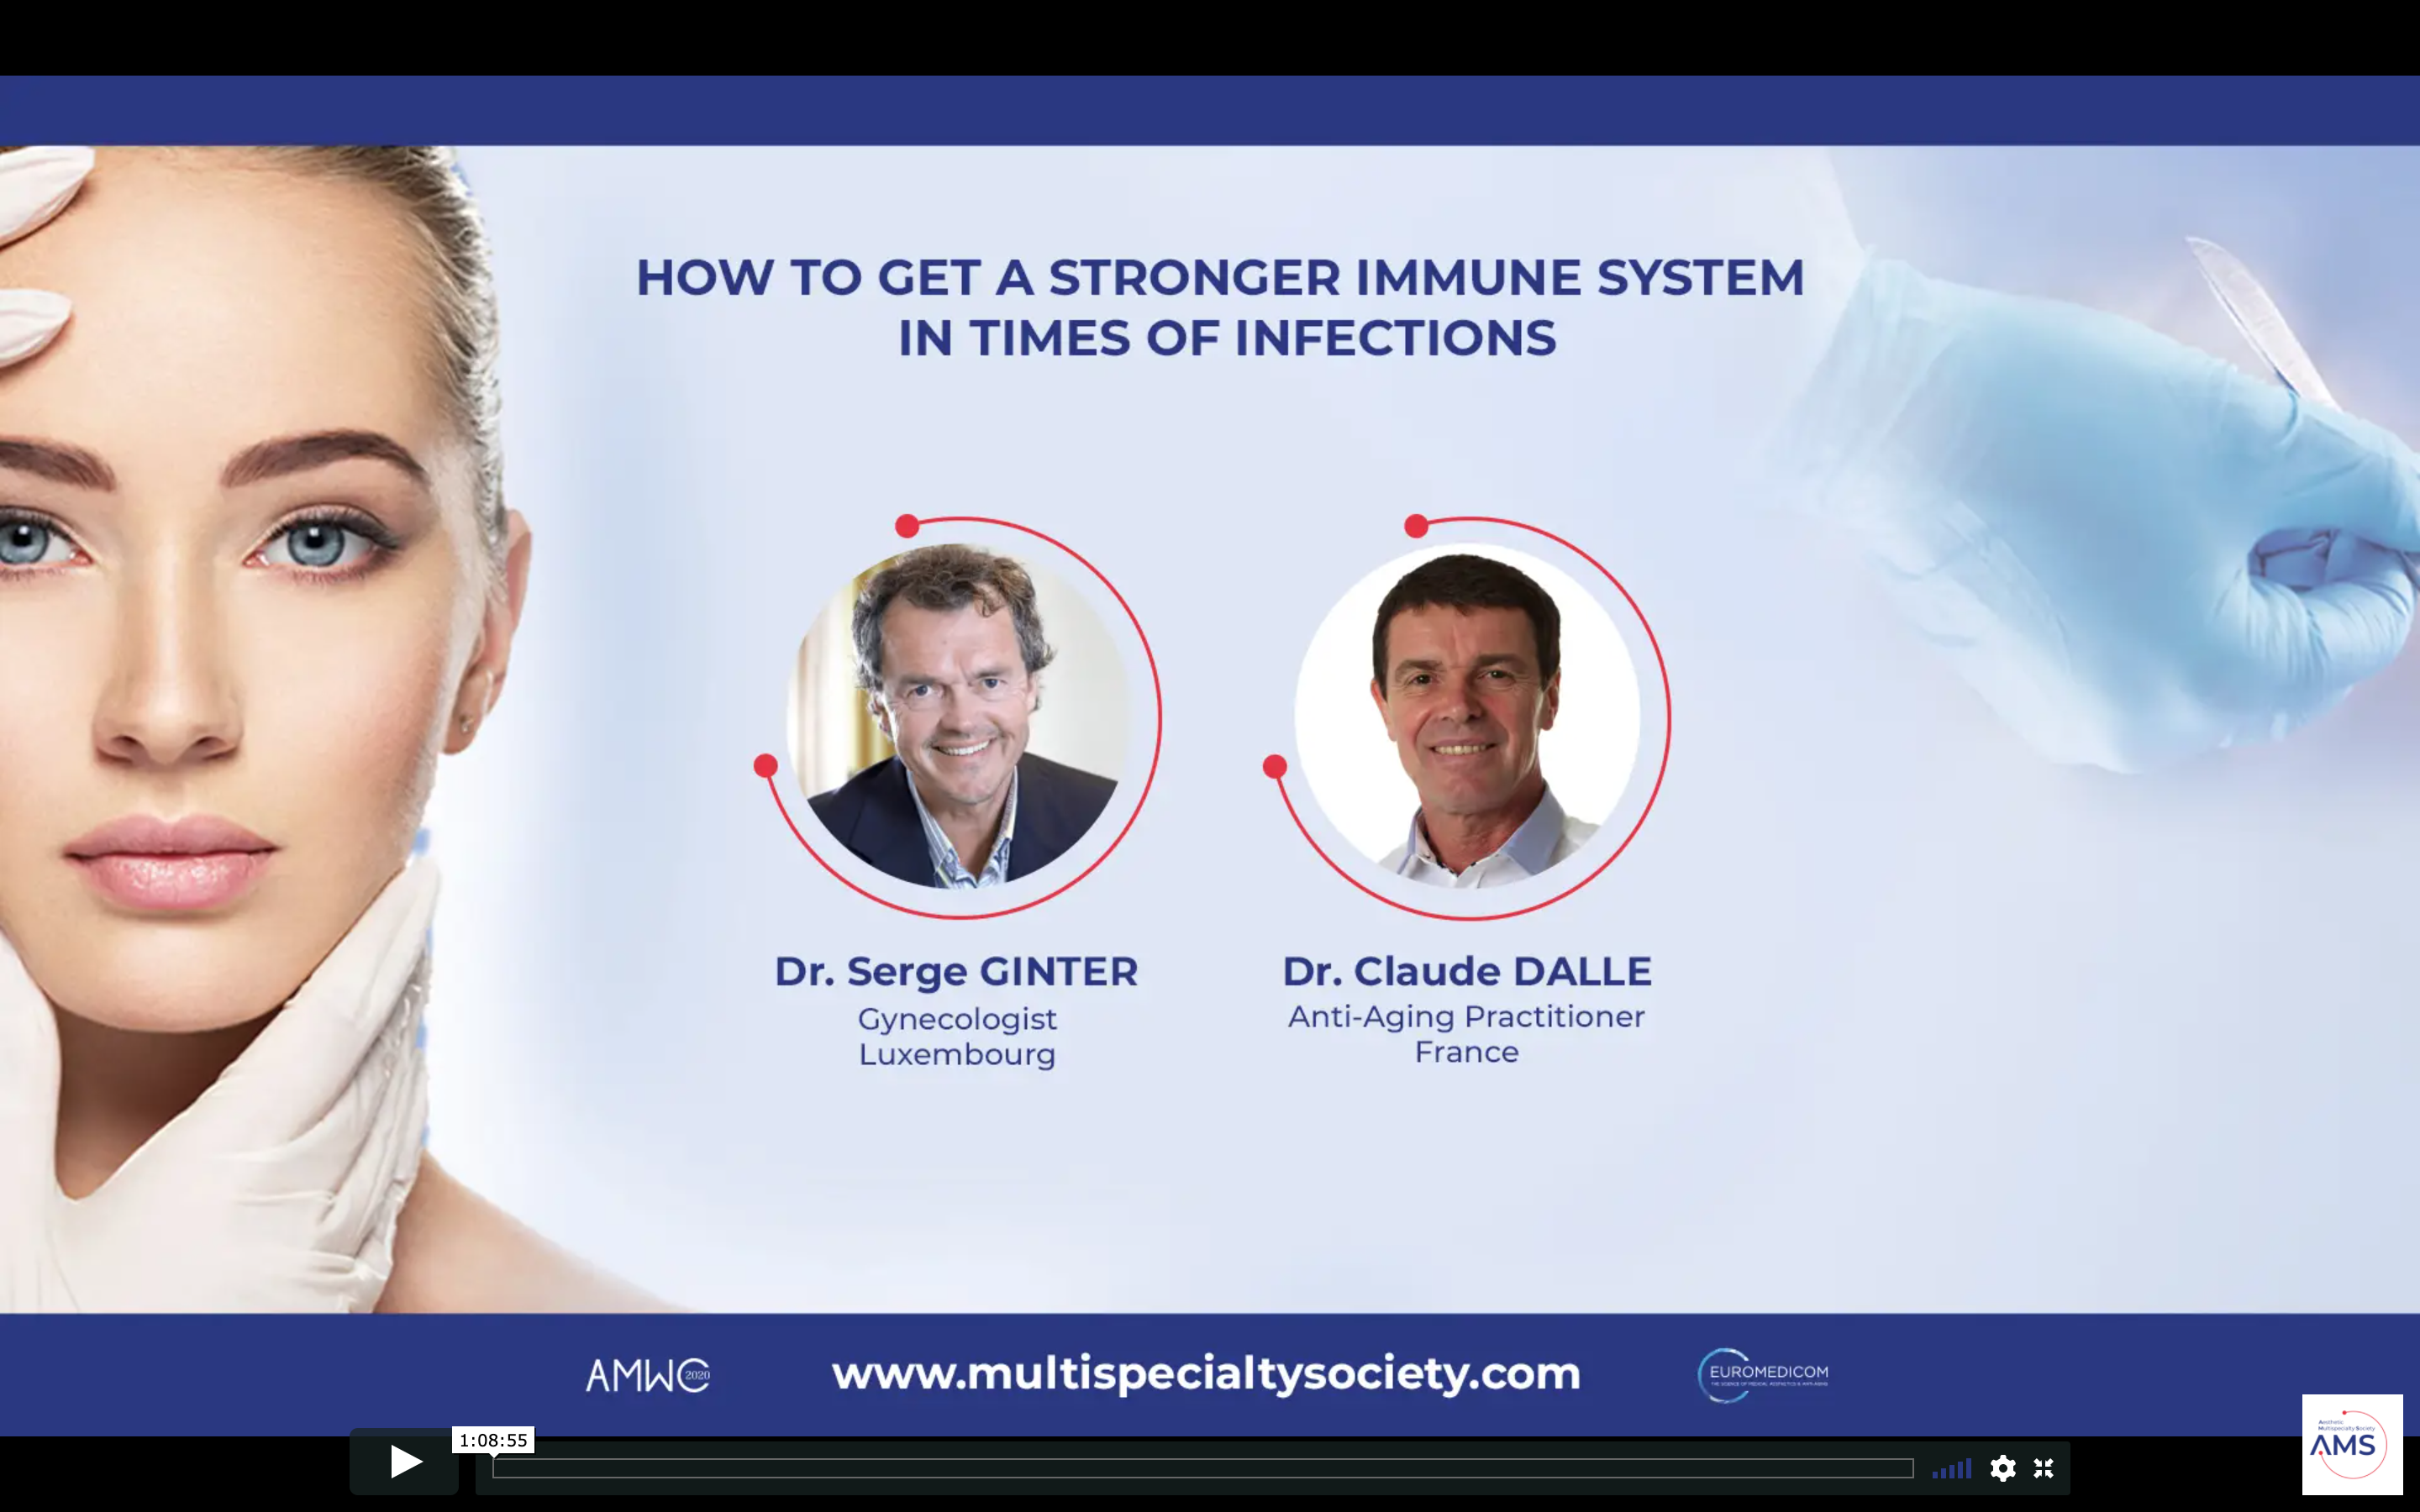 How To Get a Stronger Immune System in Times of Infections